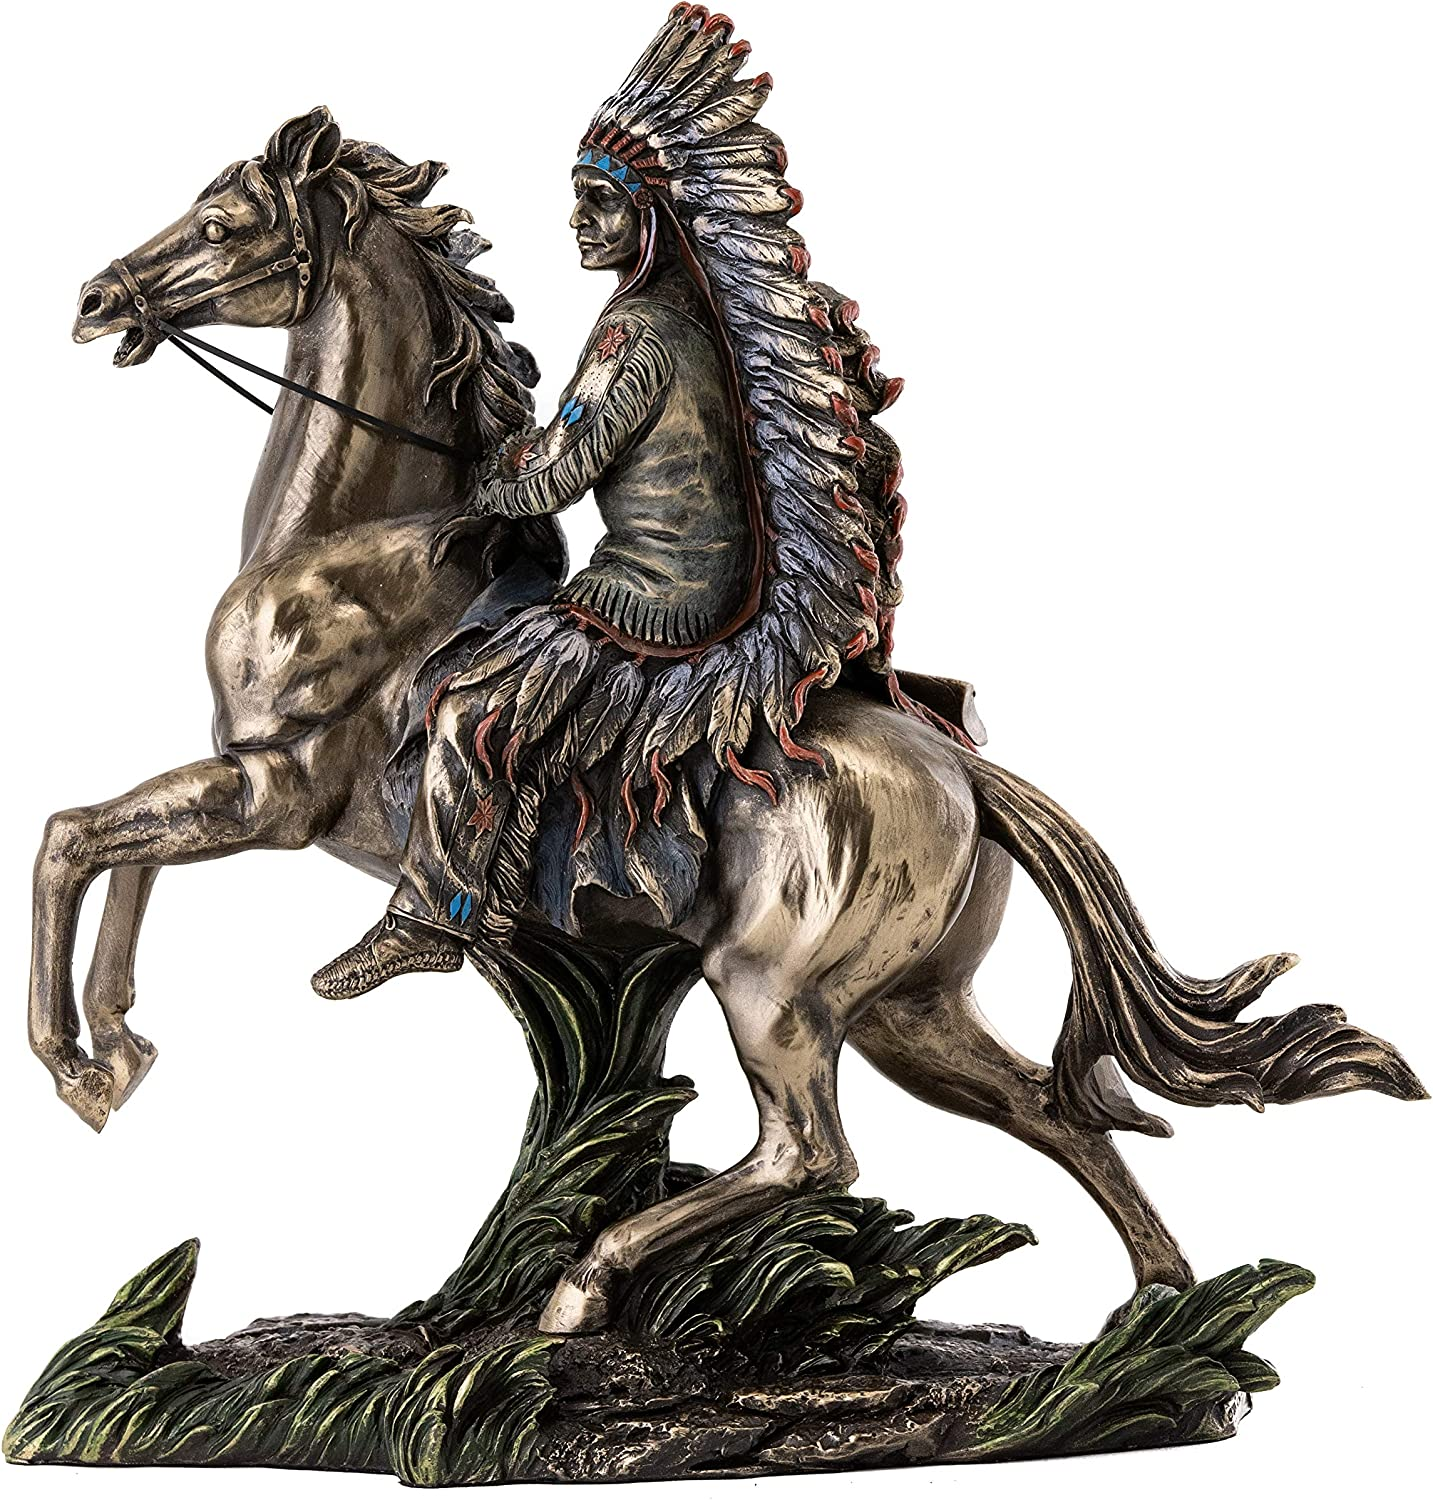 Top Collection Chief Sitting Bull on Horseback Statue - Native American Sculpture with Beautiful Headdress in Premium Cold Cast Bronze- 10.75-Inch Collectible Indigenous Warrior Figurine